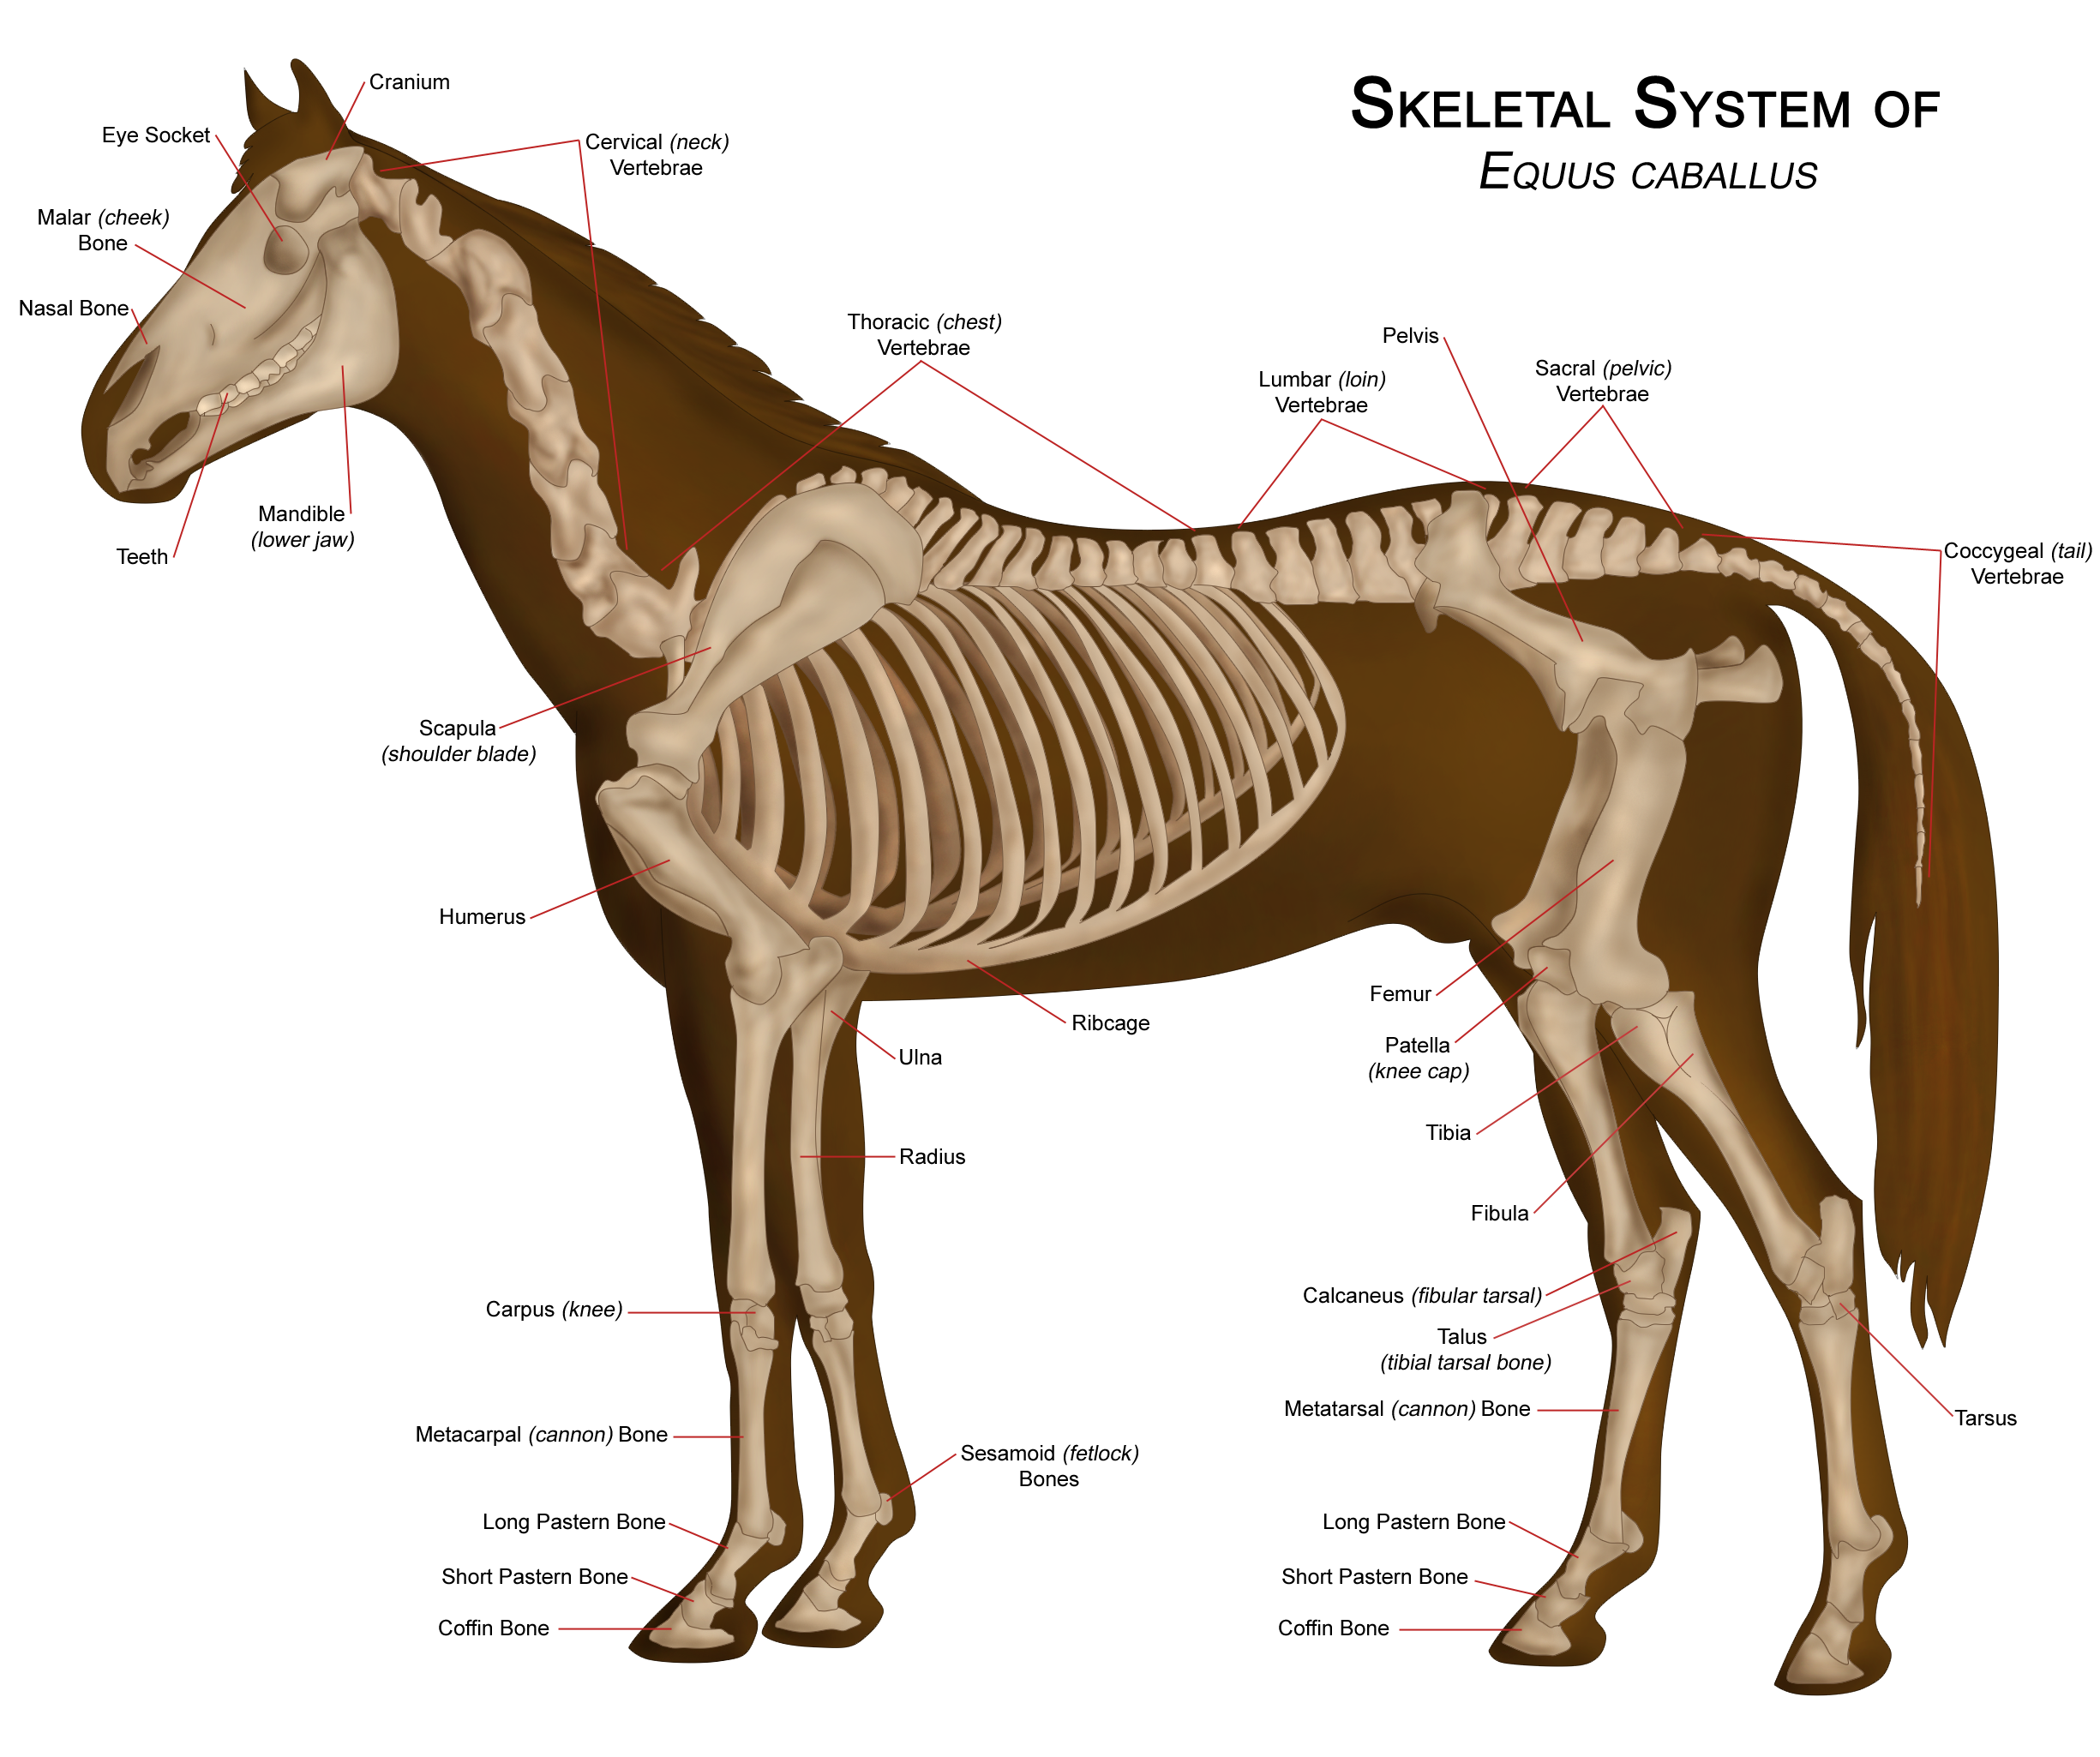 File:Horseanatomy.png - Wikipedia